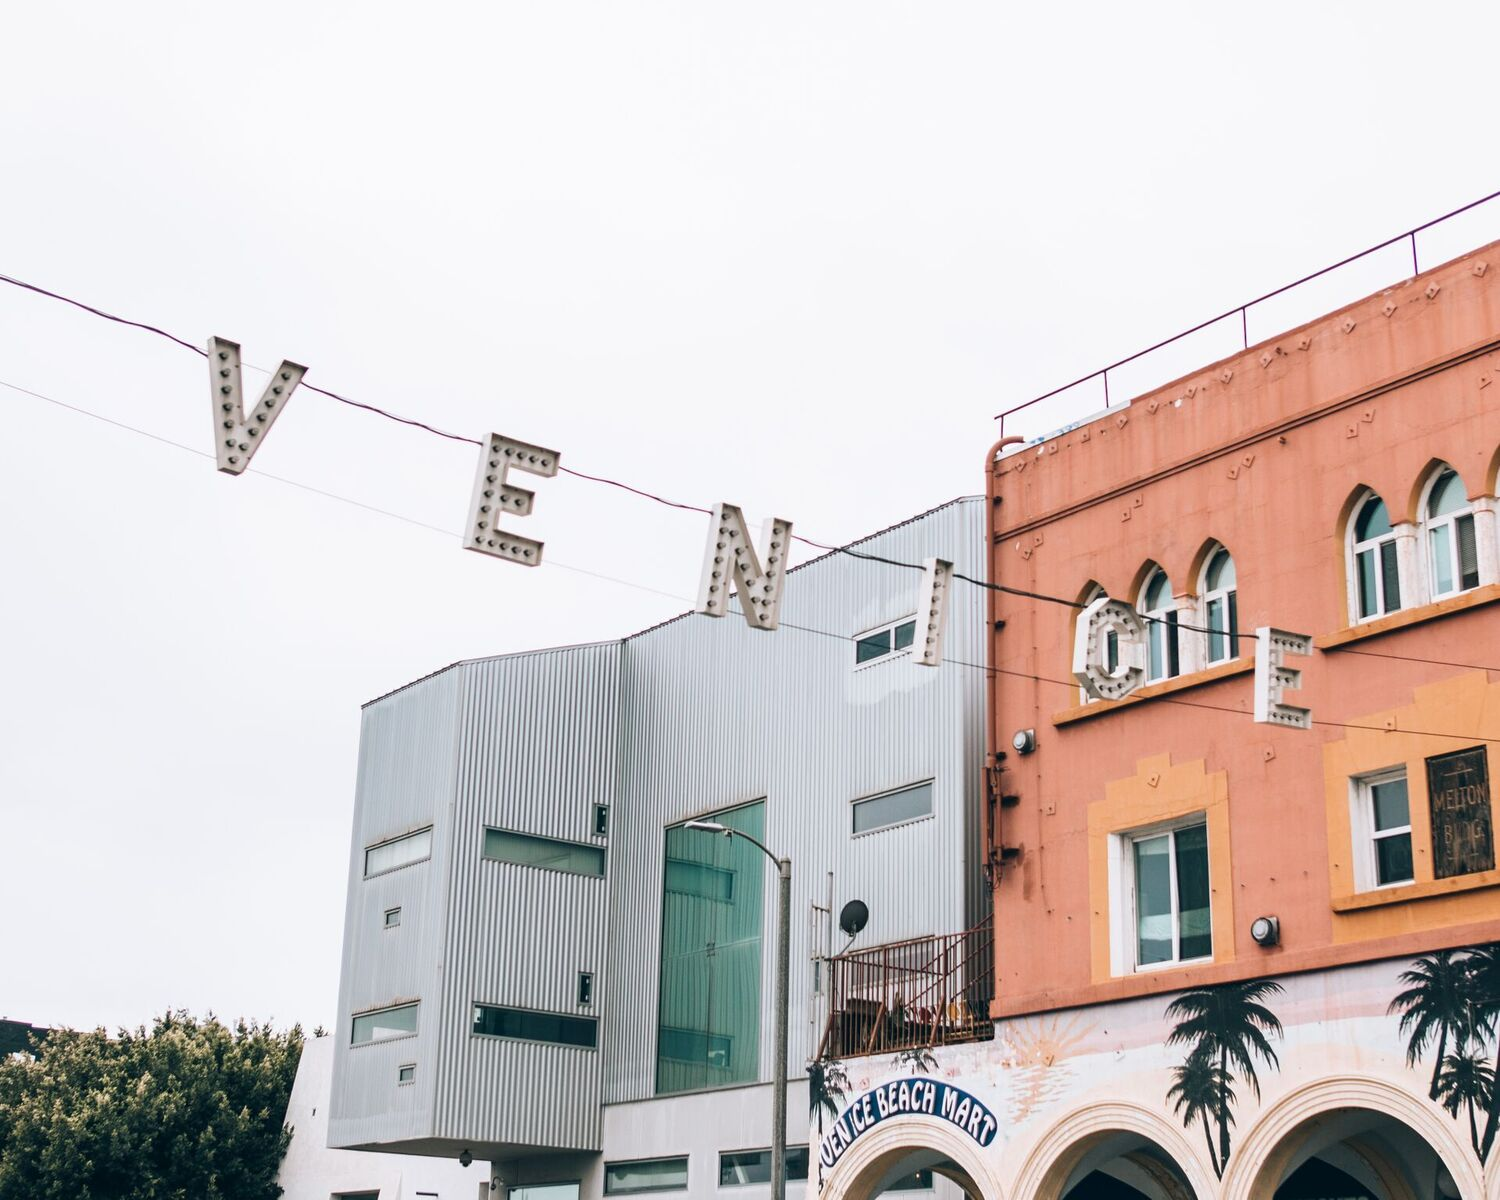 9 fun Instagram spots in LA, California- Venice sign // www.thefabblog.com